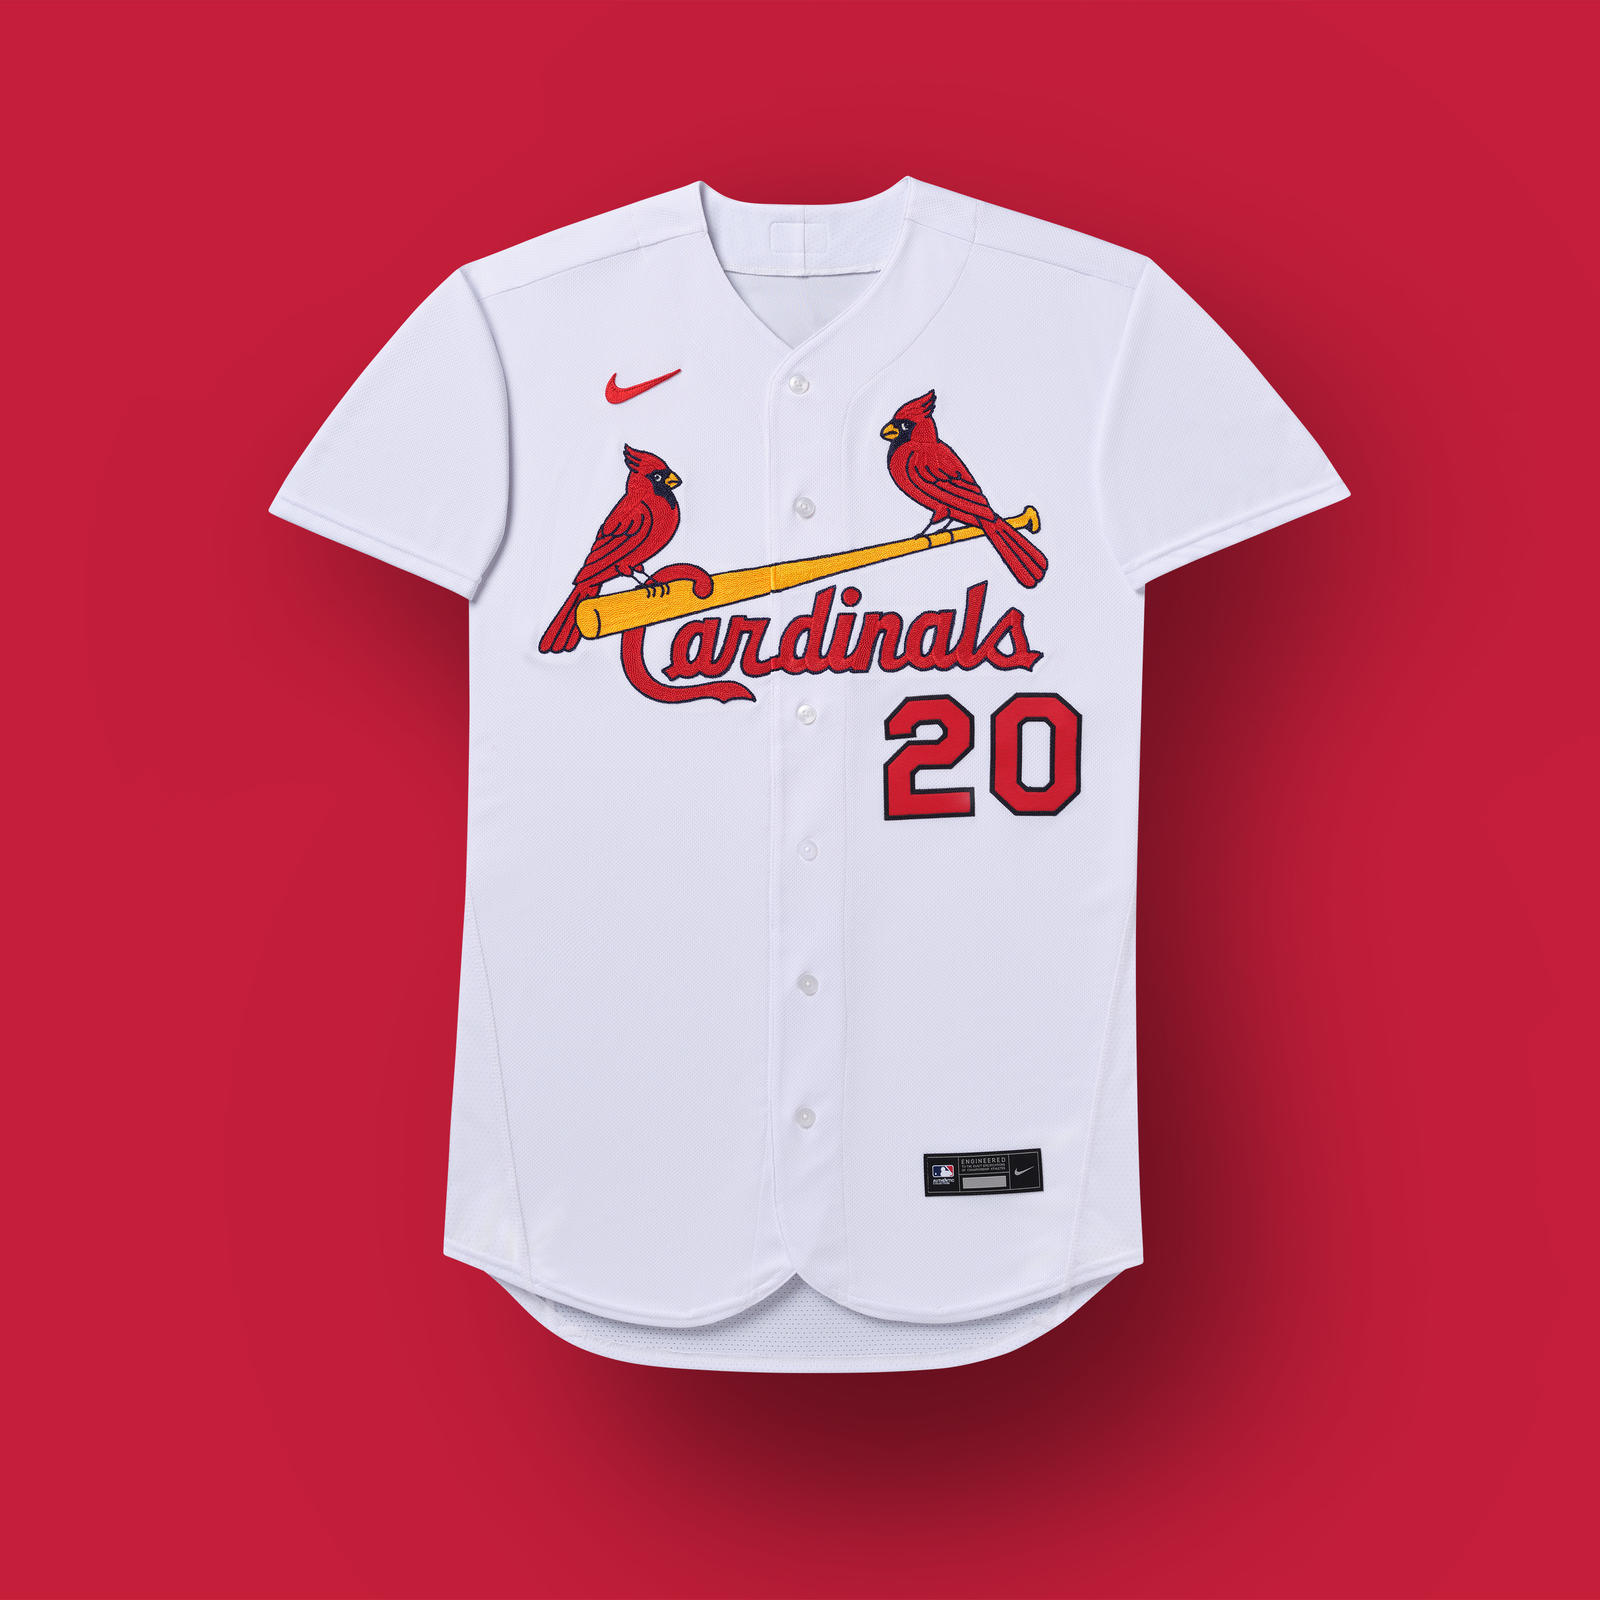 Nike x Major League Baseball Uniforms 2020 Official Images 23